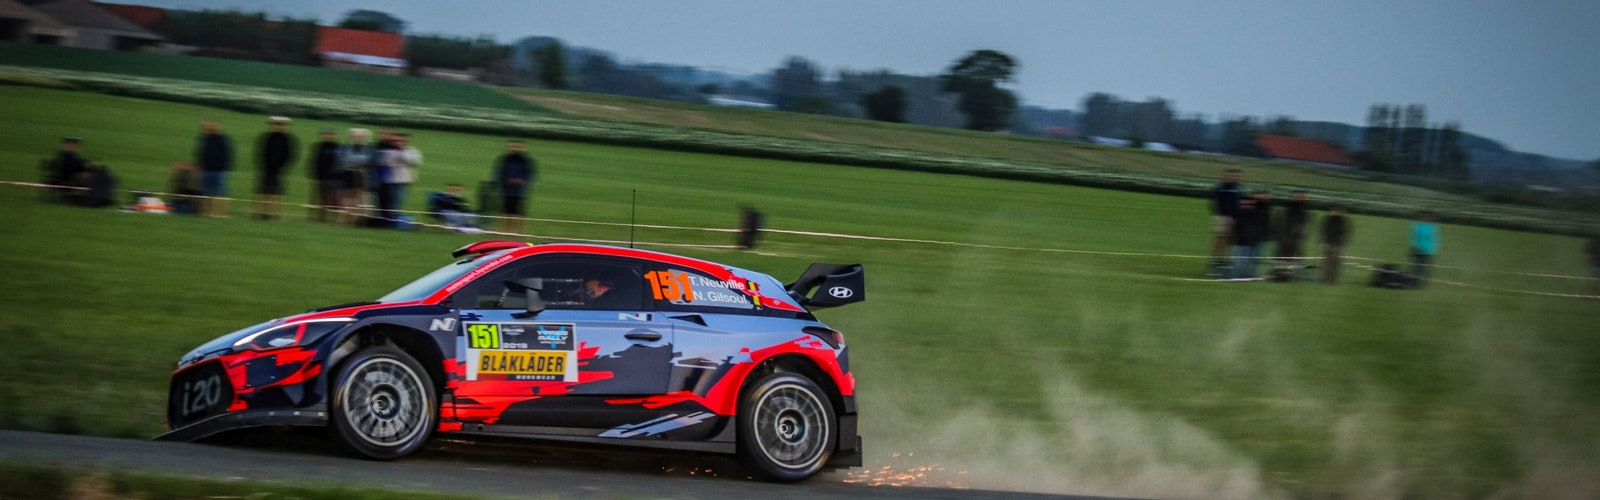 Thierry Neuville Ypres 2019